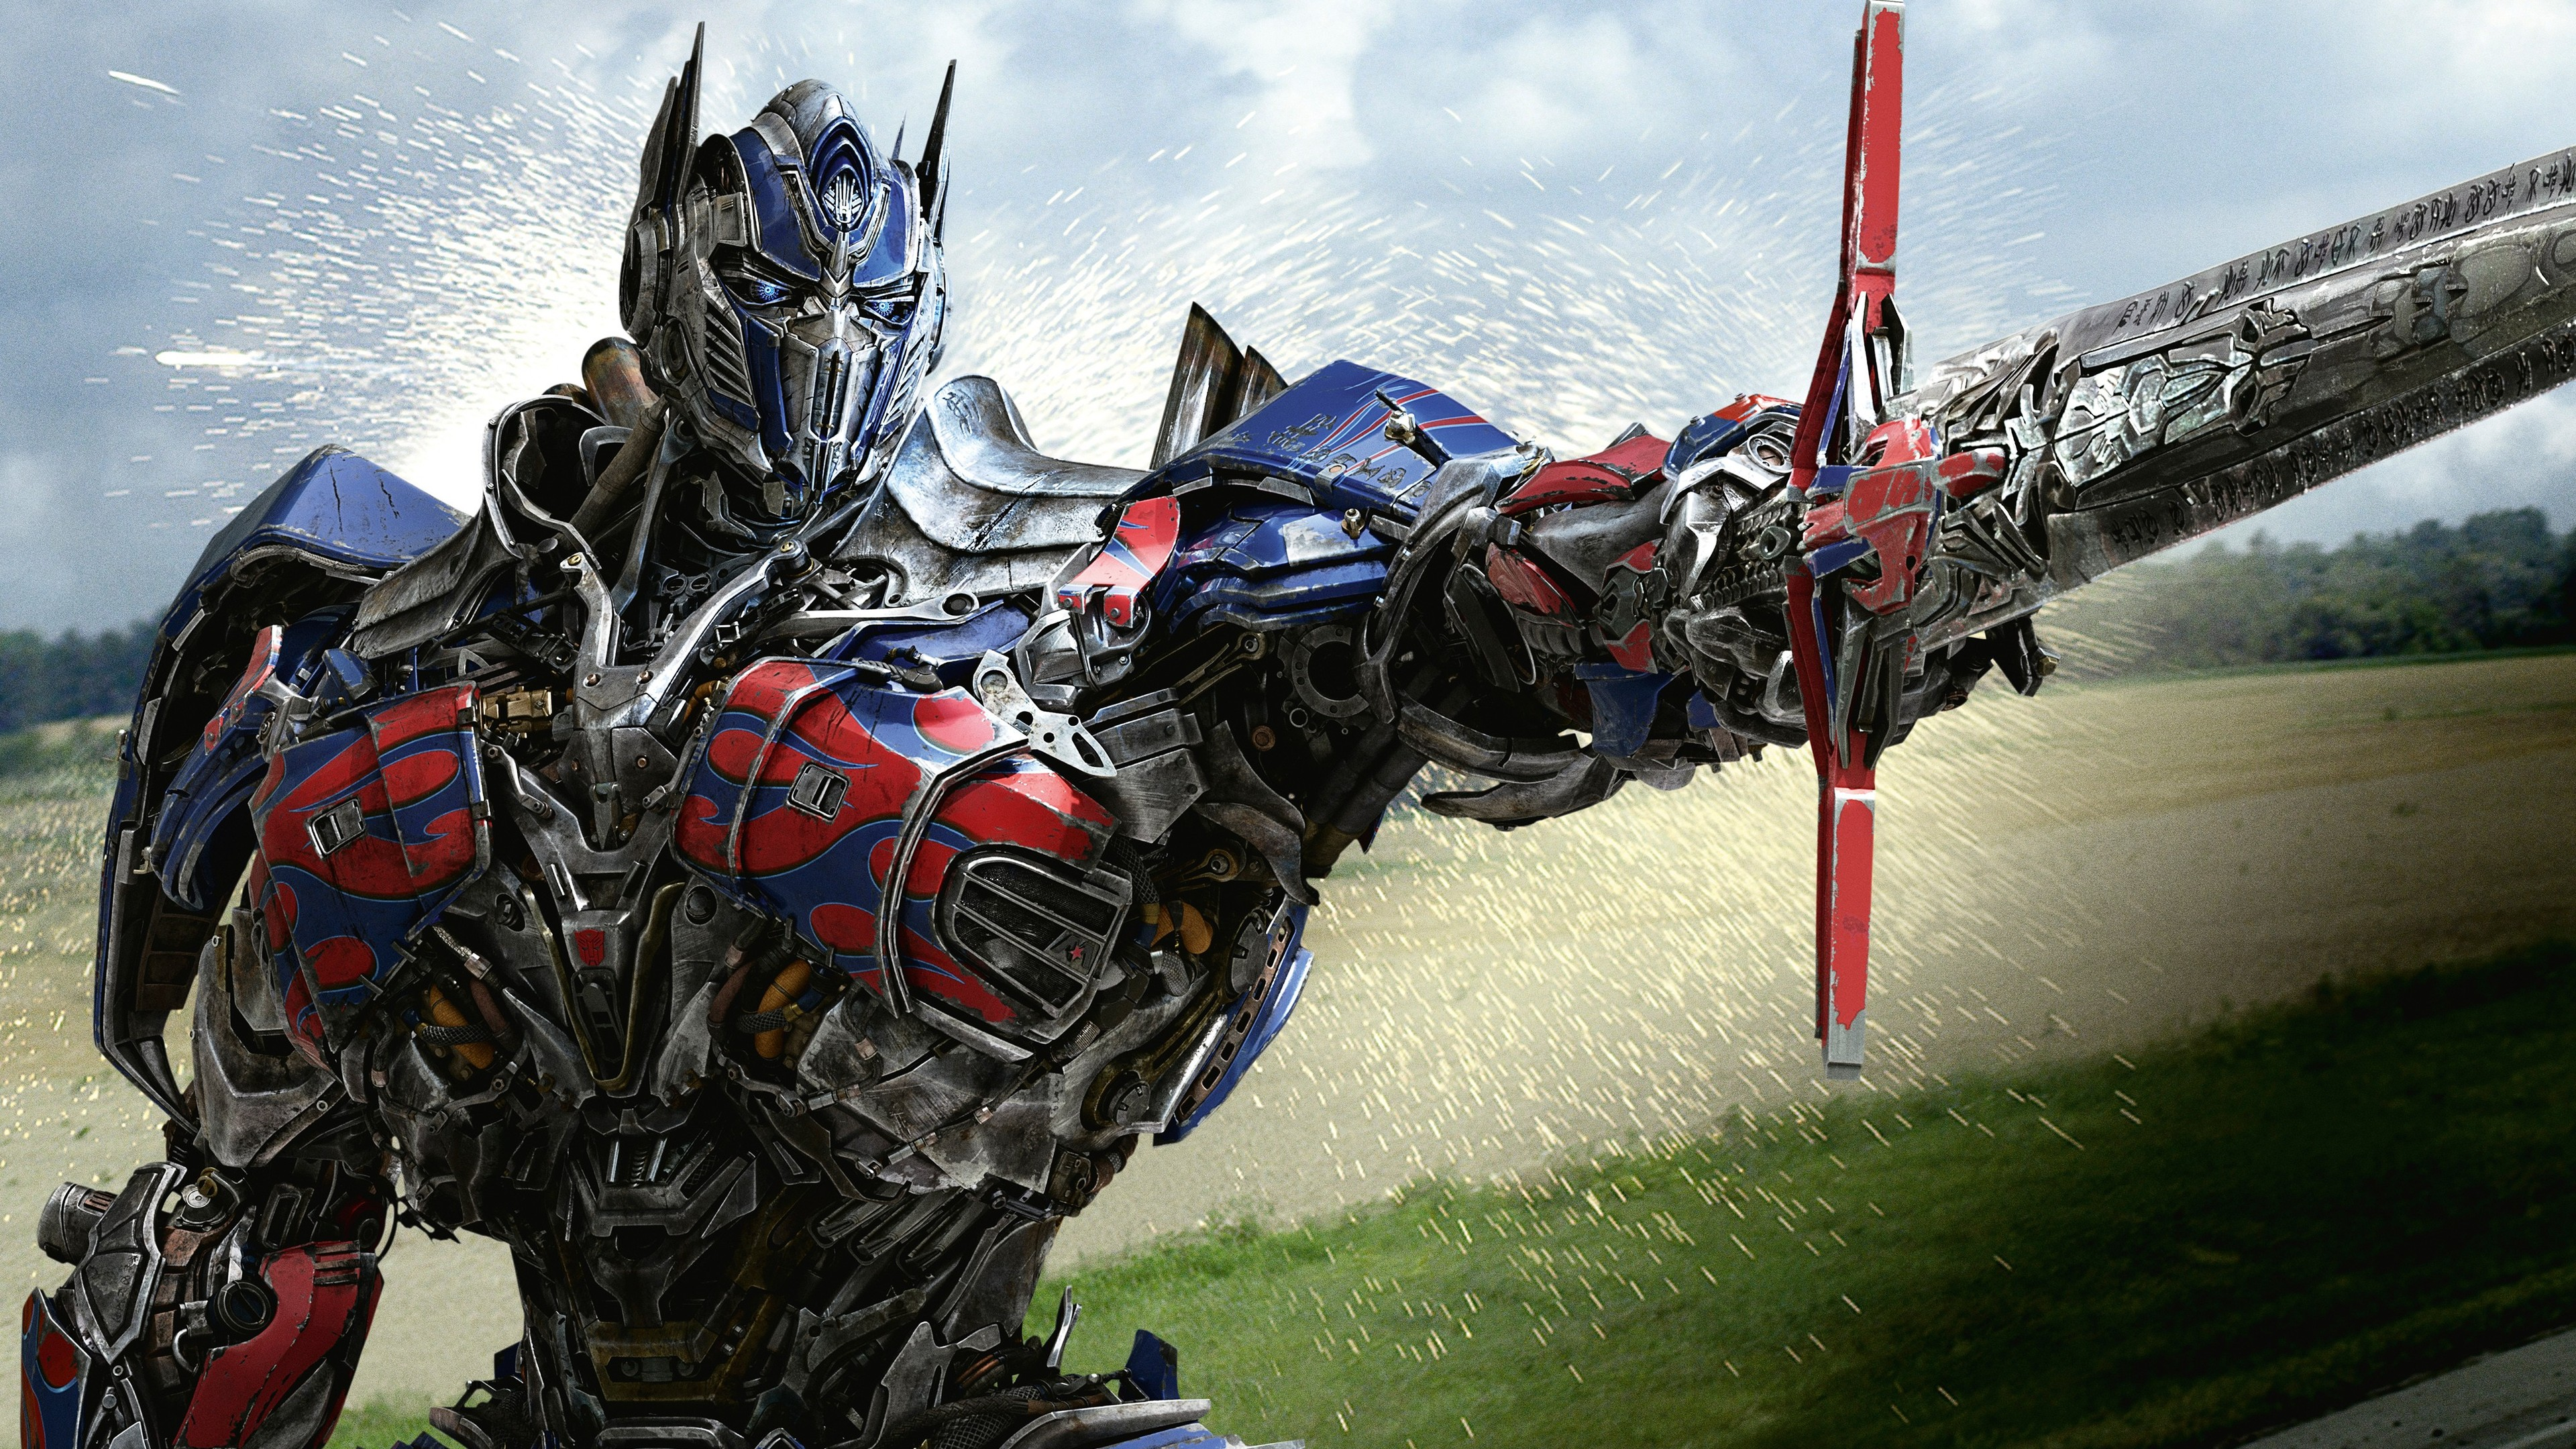 optimus prime in transformers 4 age of extinction, hd movies, 4k